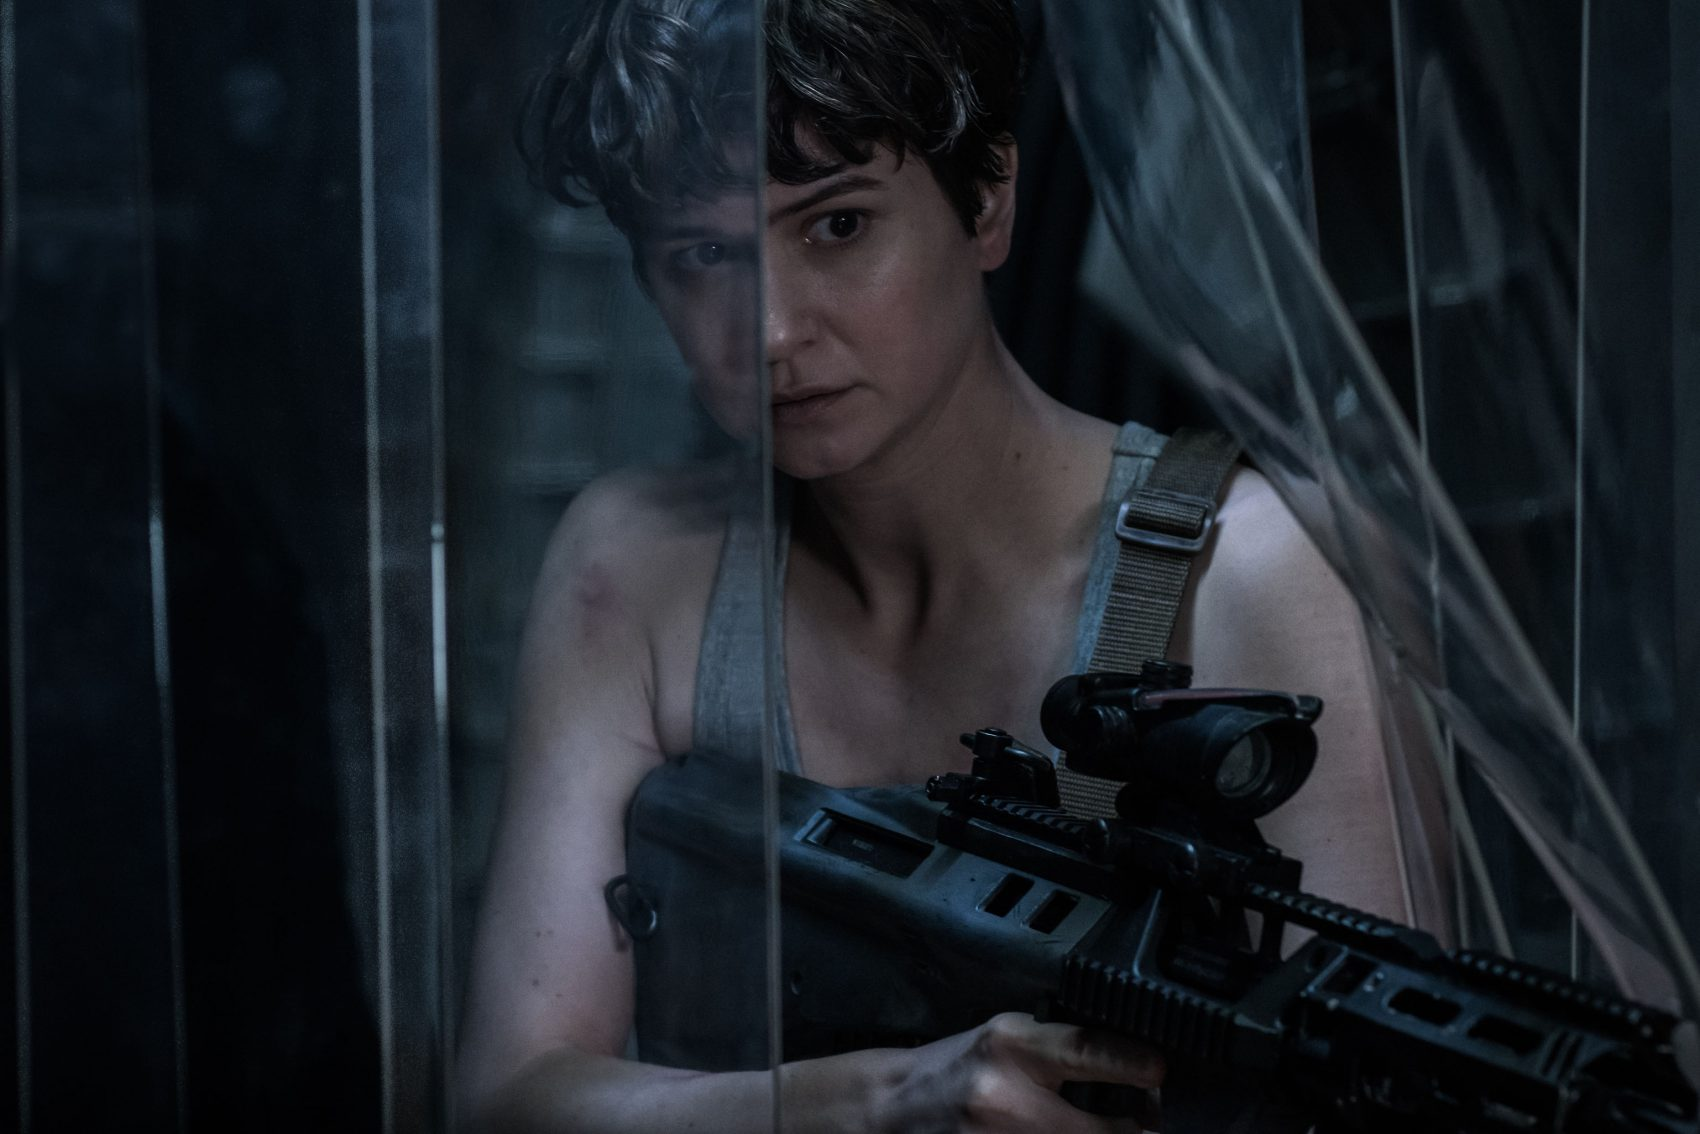 Alien: Covenant is incoherent and pointlessly complicated